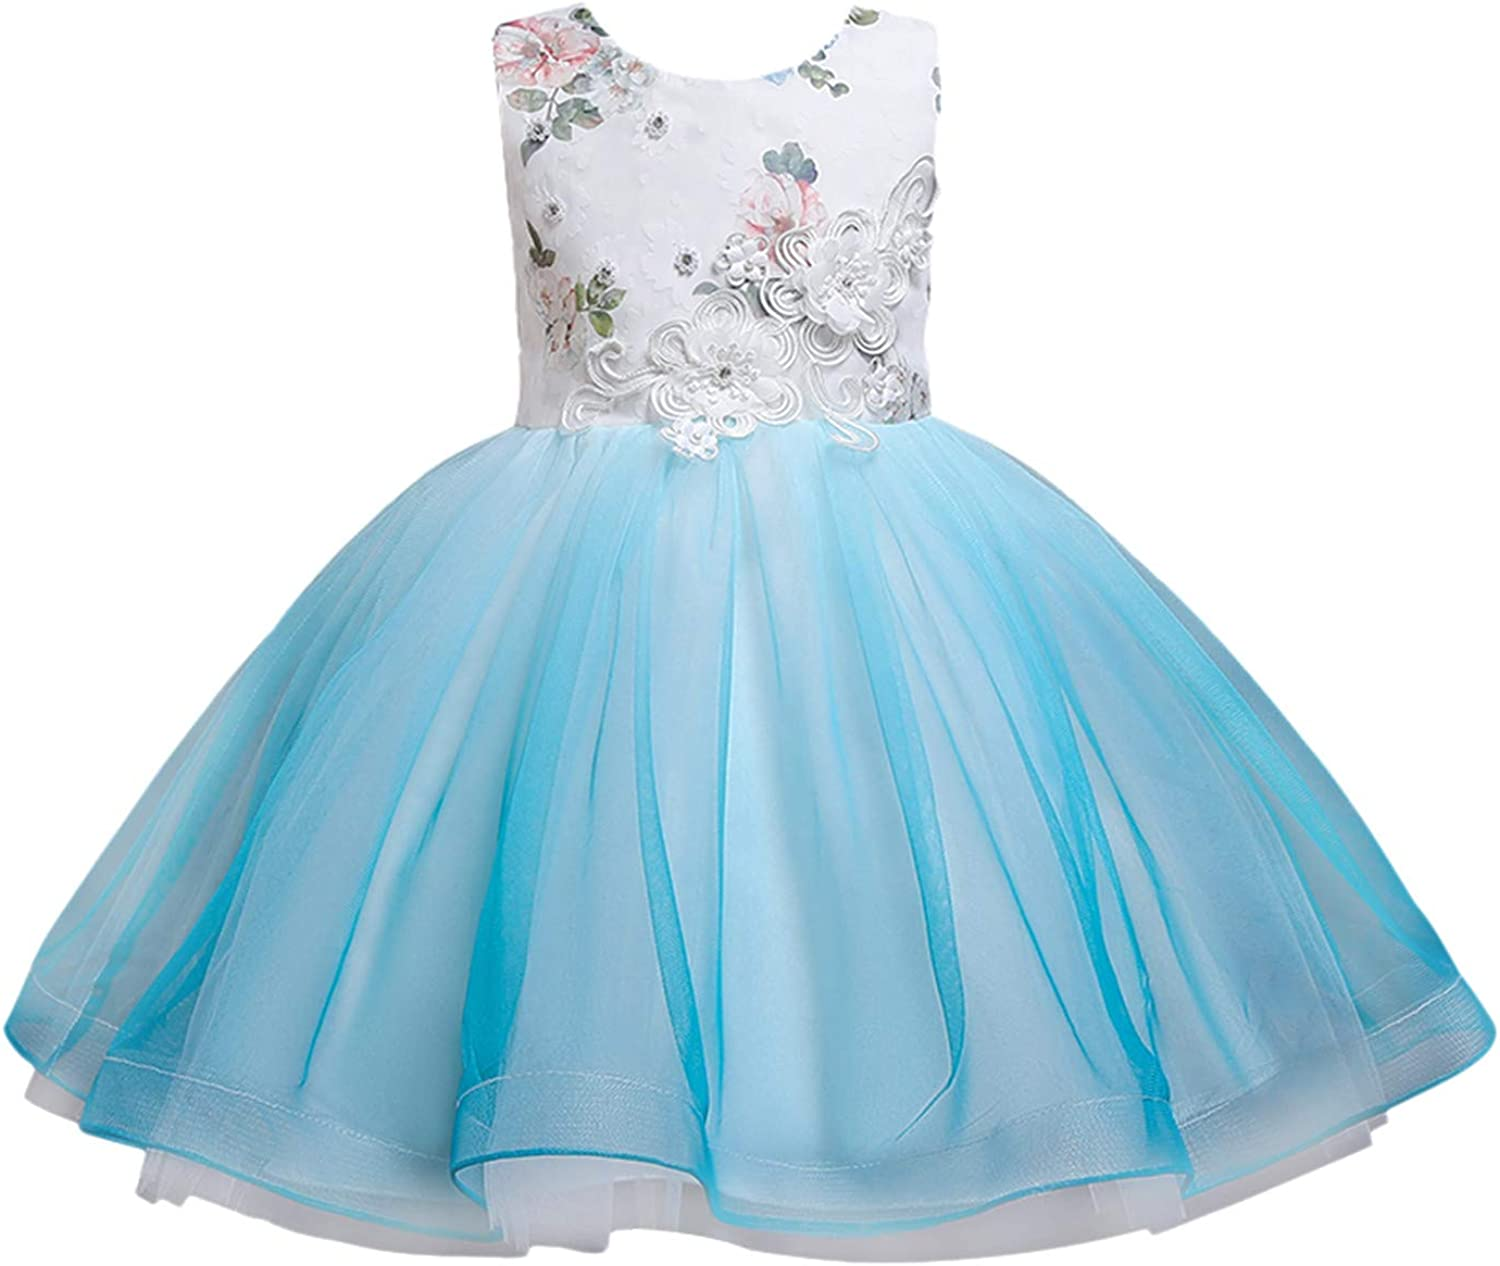 Girls Princess Dress 2-7 Years Sleeve Old Max 63% OFF Max 78% OFF Toddler Kid Baby